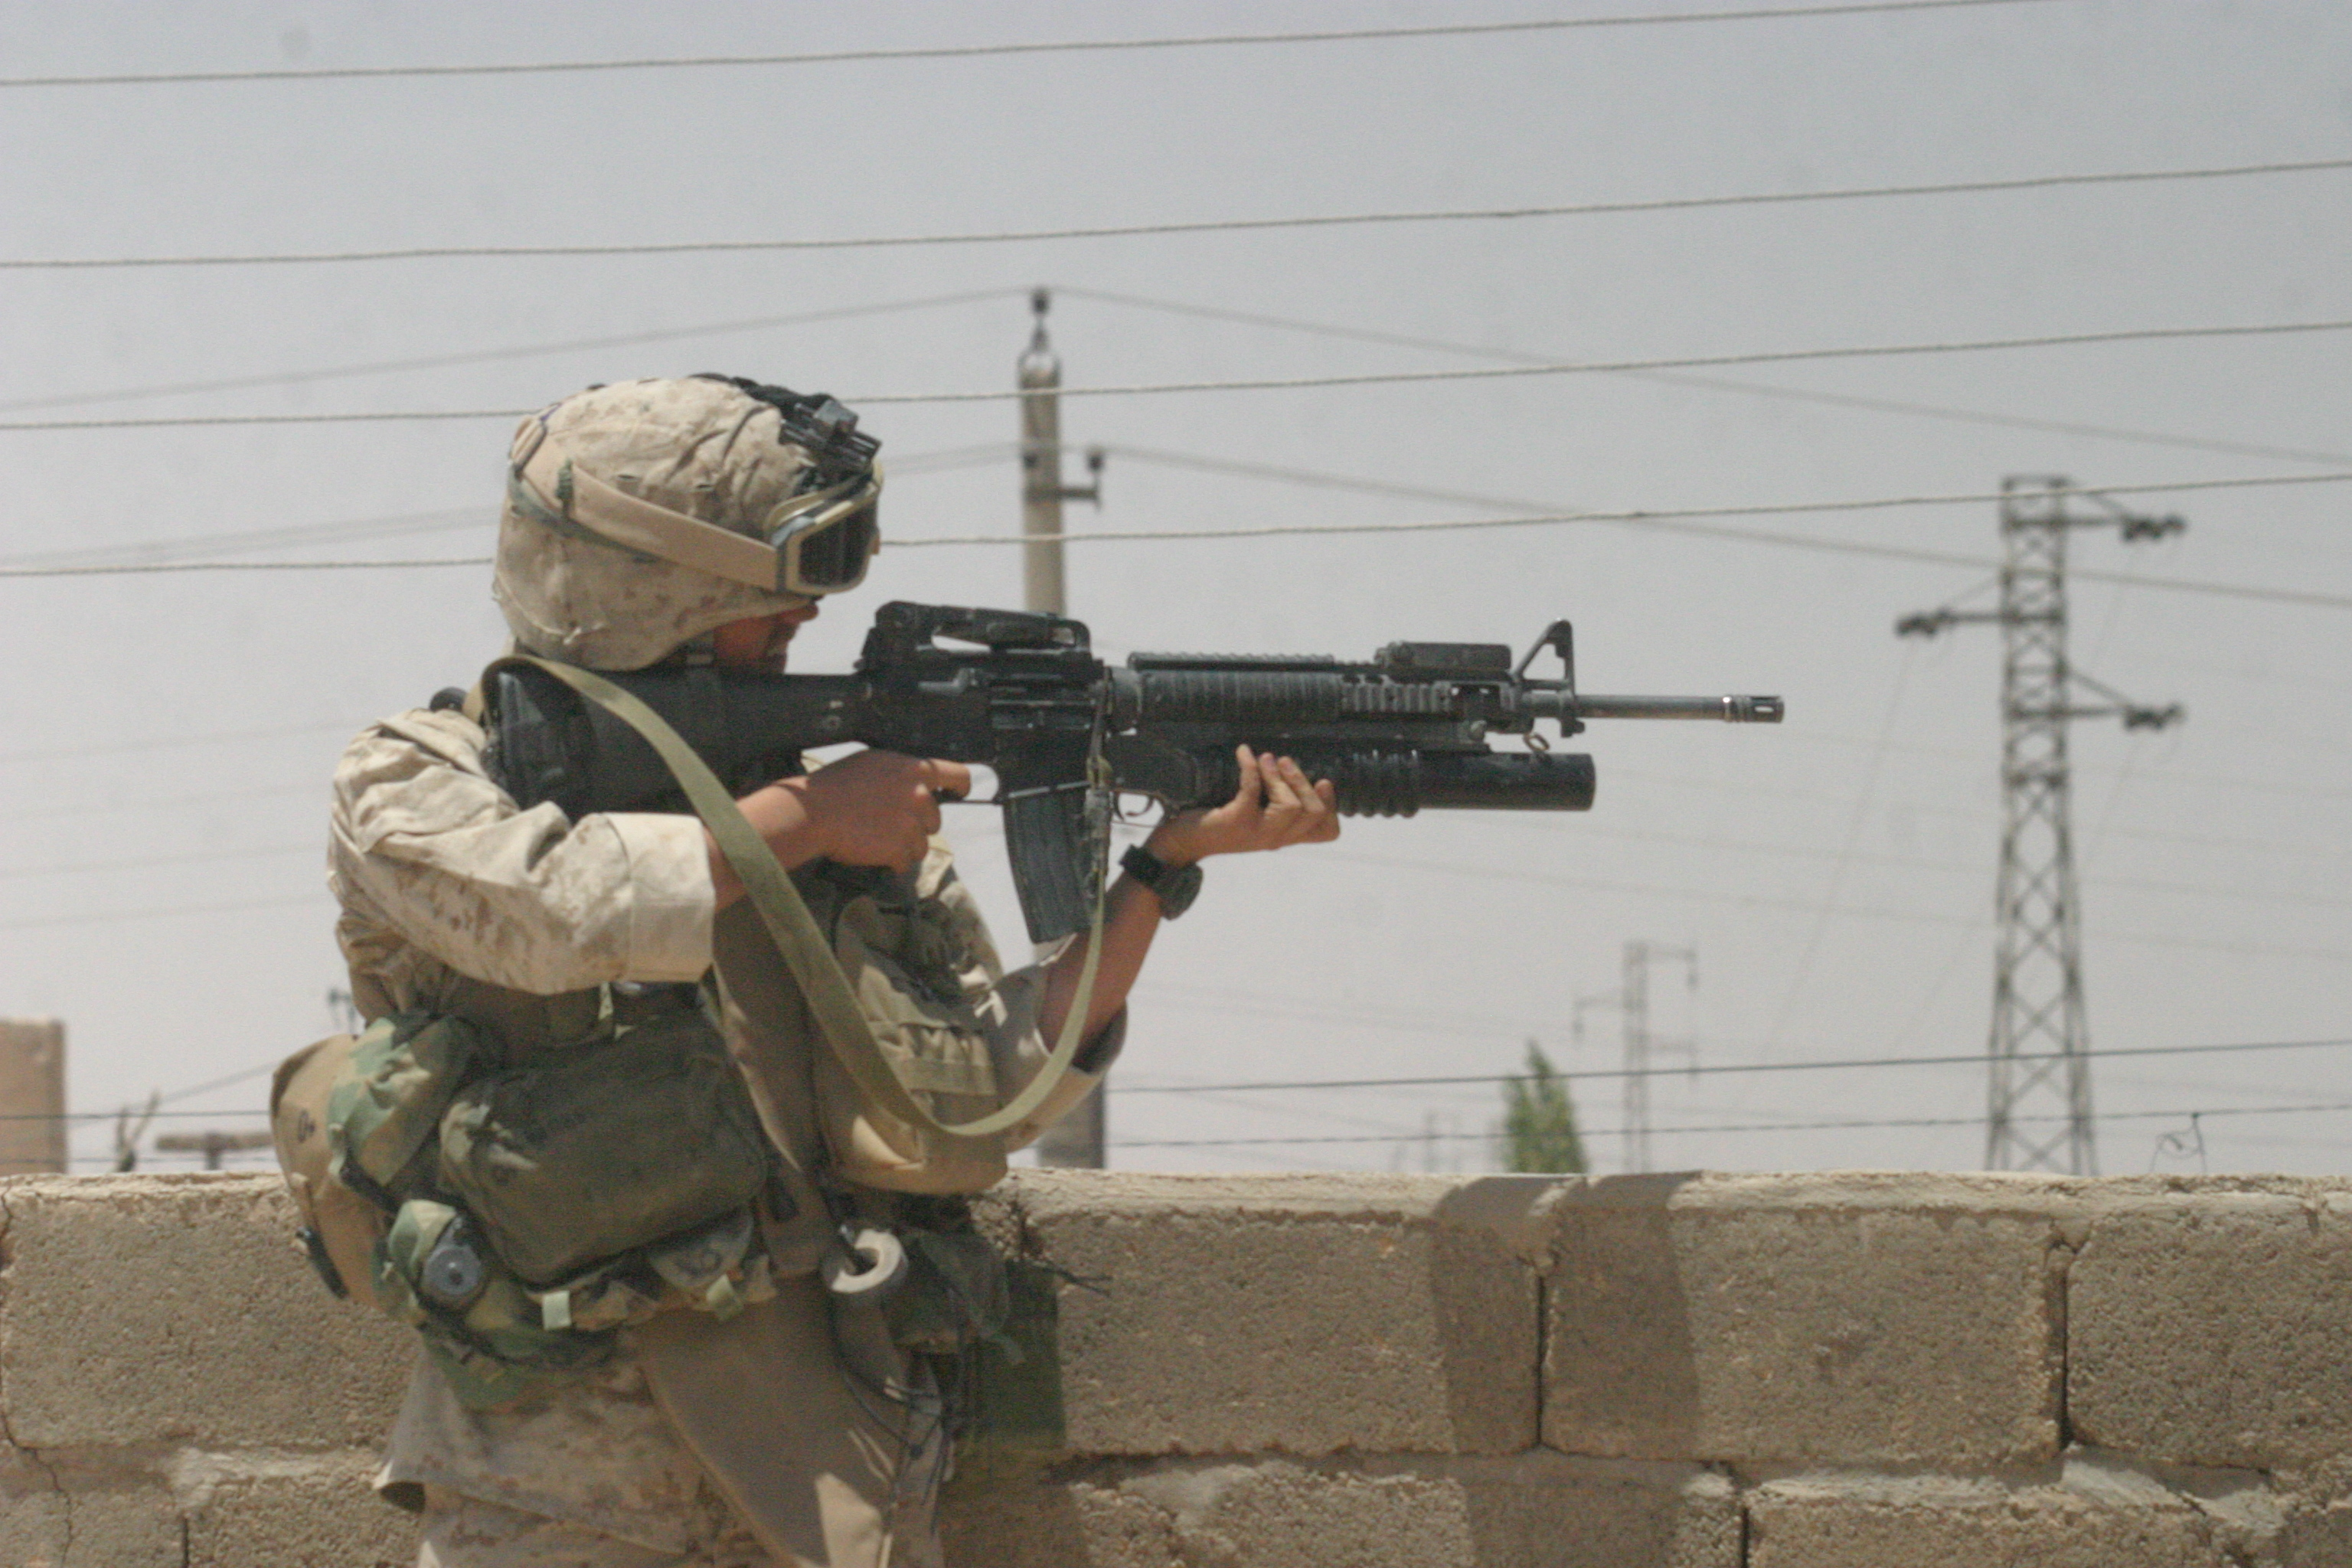 operation iraqi freedom 3 essay Catastrophic interdicti on: air power and the collapse  in operation iraqi freedom, coalition fighters and bombers flew about 20,700 sorties and struck.